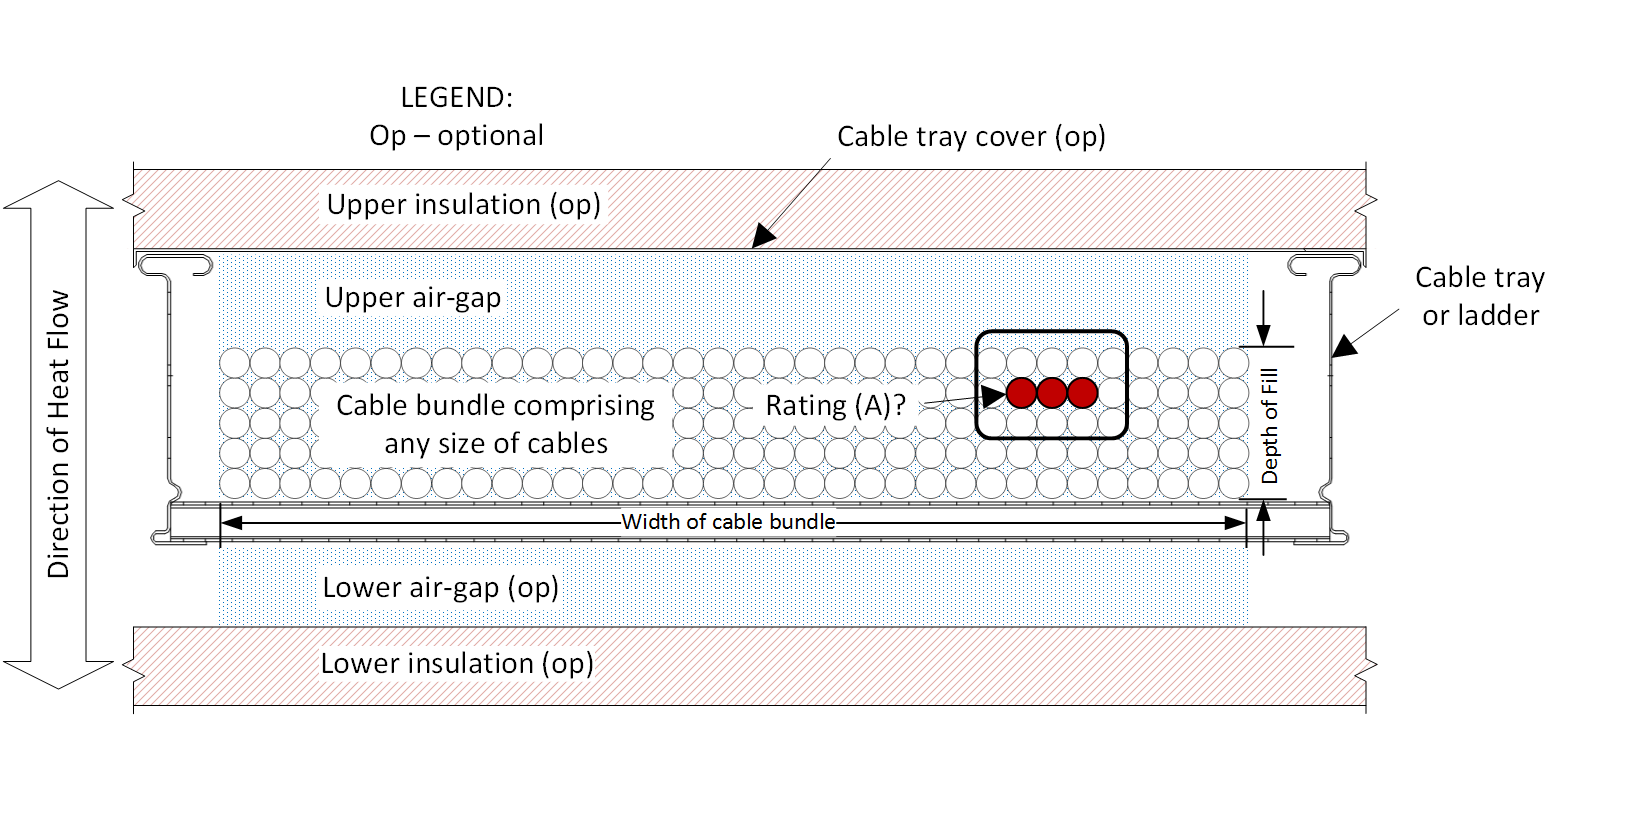 Stolpe method - High Voltage Power Cable Current Ratings